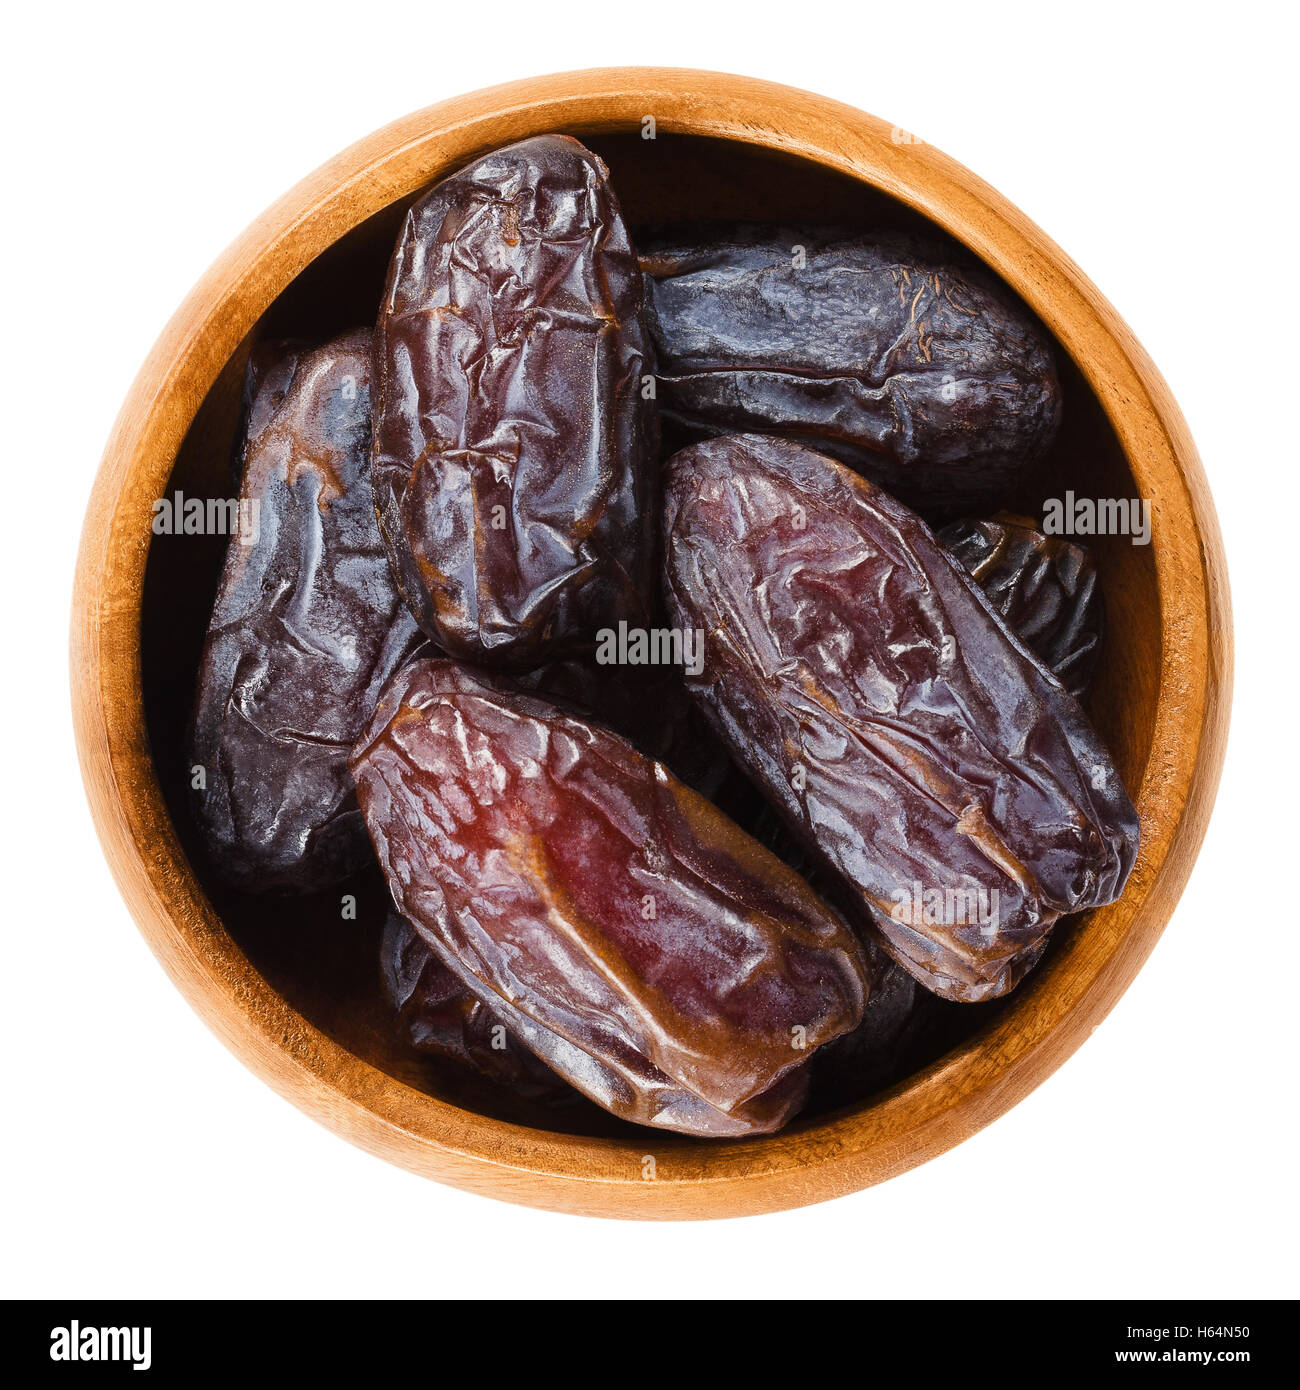 Dried Medjool dates from Morocco in a wooden bowl on white background, also called Mejhool. Large, sweet and succulent - Stock Image